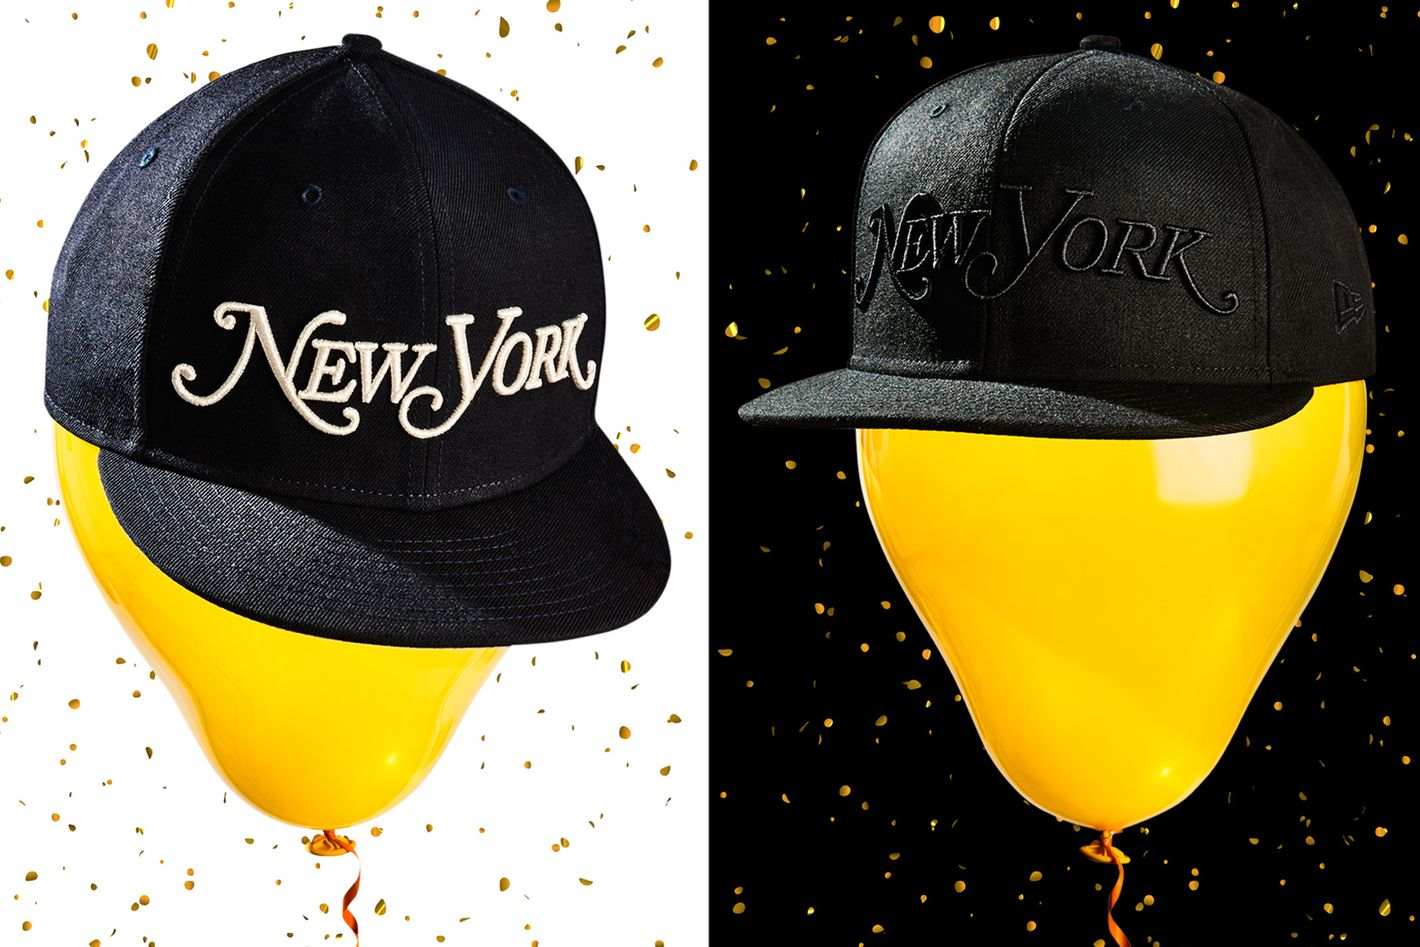 New York T-shirts and caps